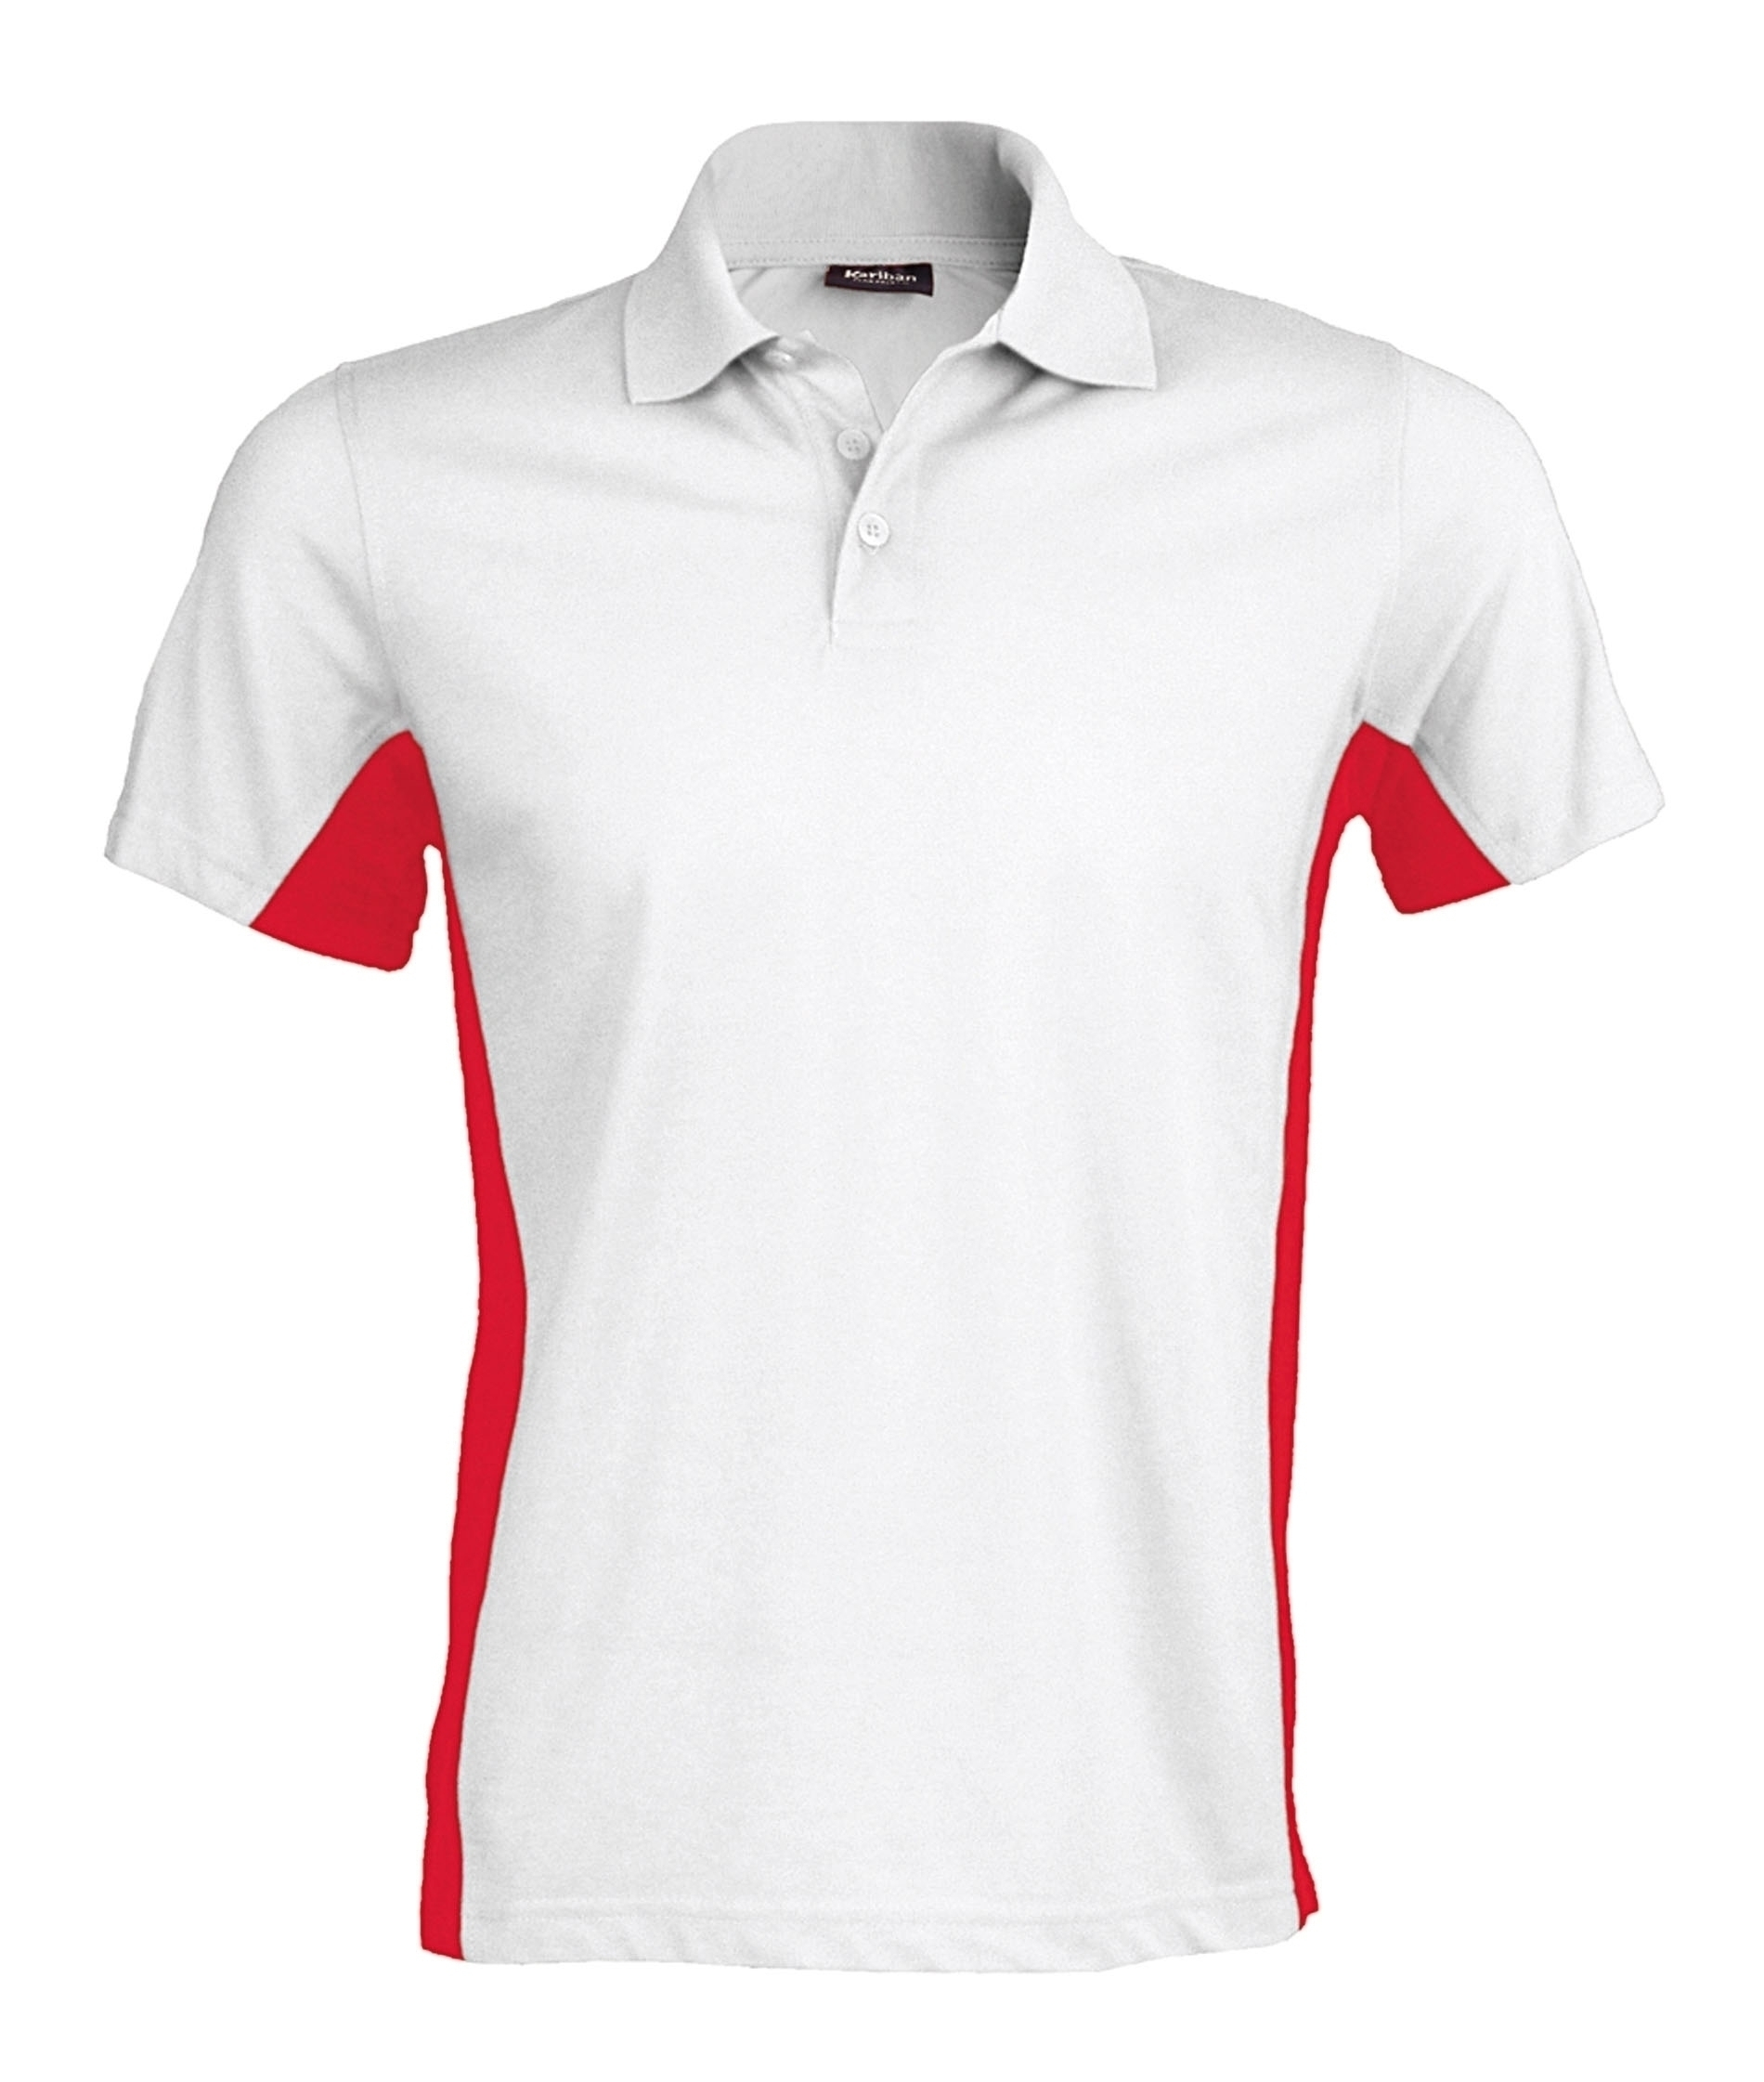 FLAG > POLO BICOLORE MANCHES COURTES White / Red Blanc